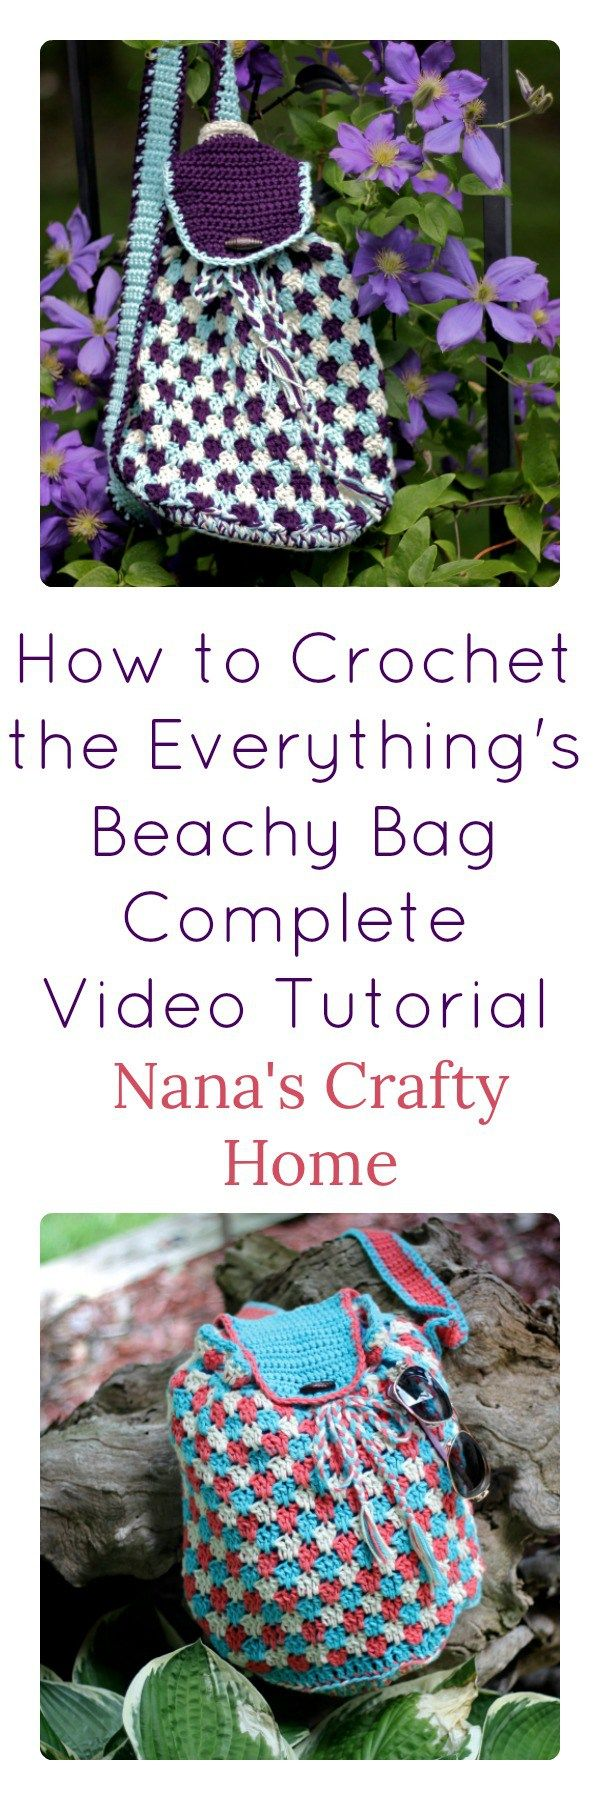 How to Crochet the Everything\'s Beachy Bag Video Tutorial a free ...